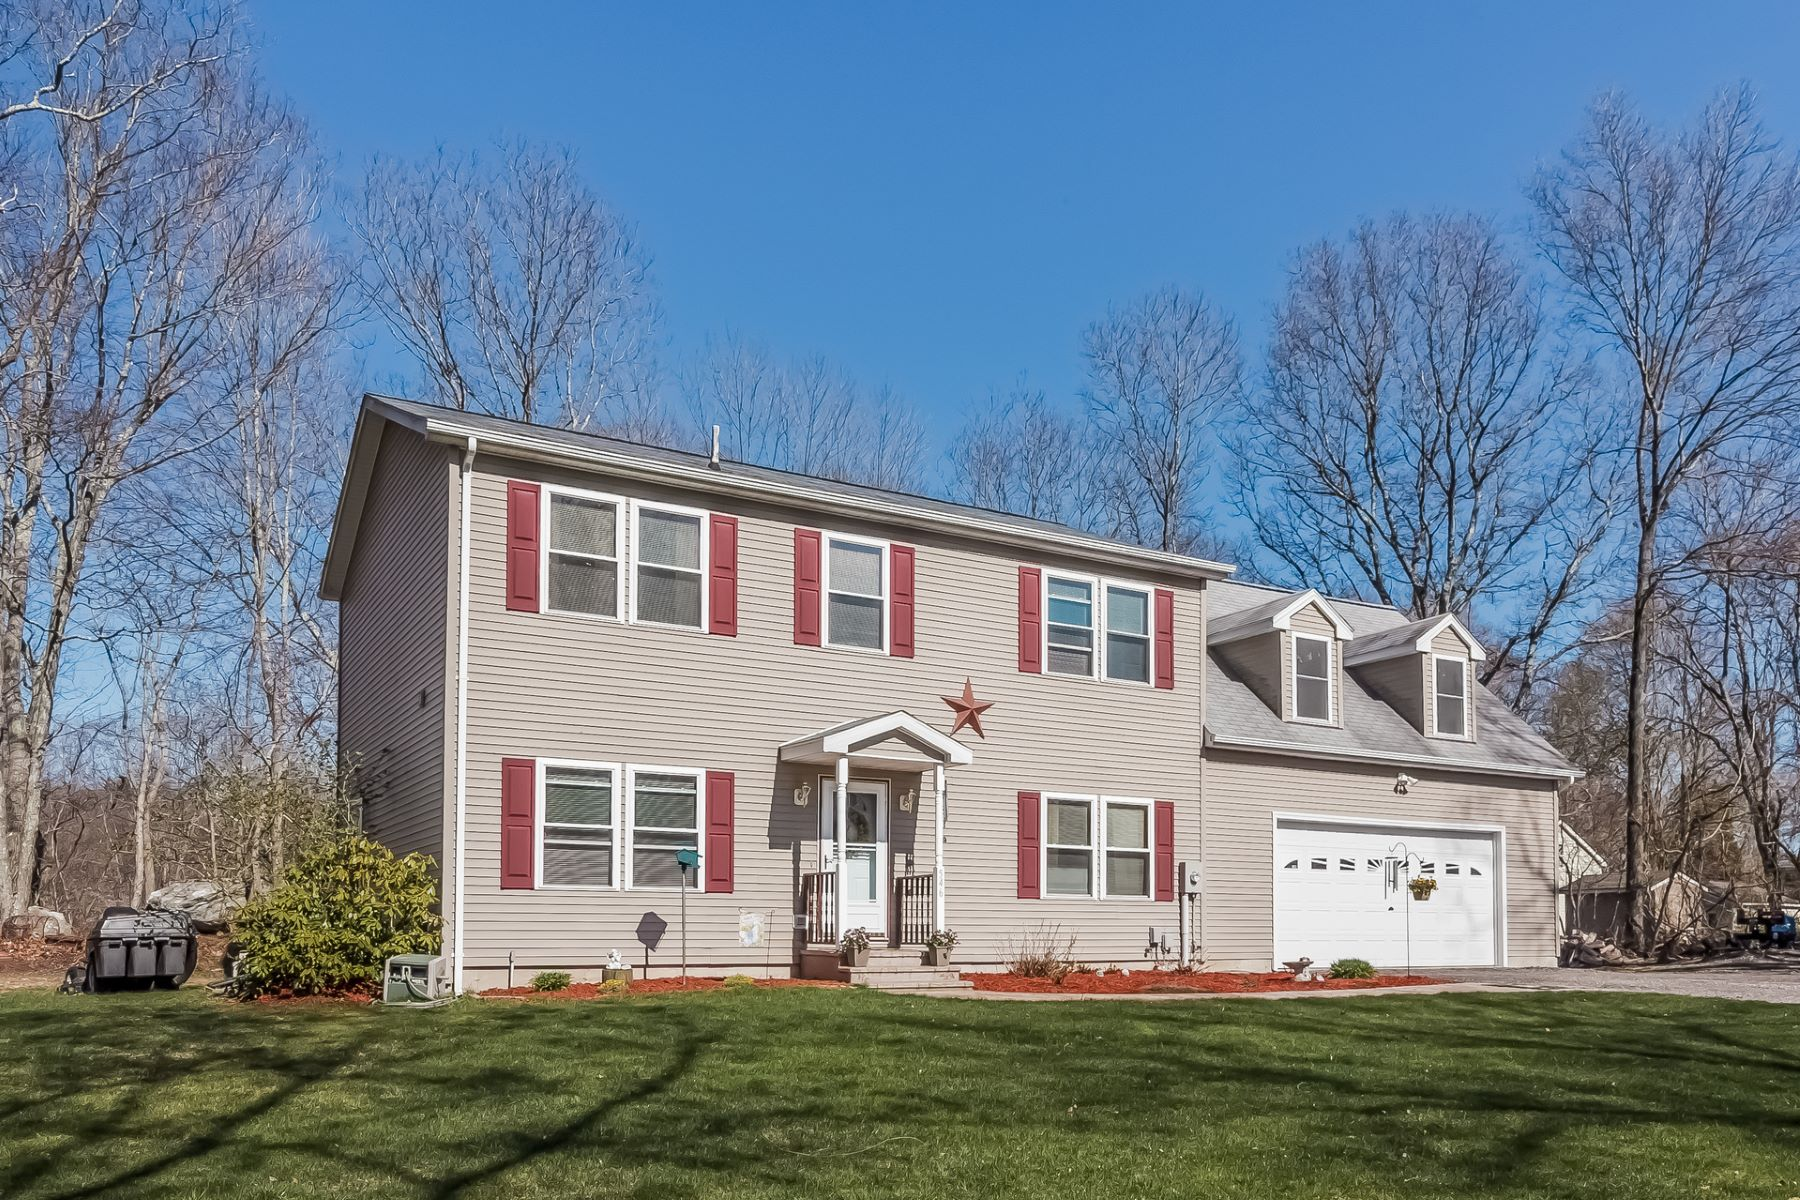 Single Family Home for Sale at Private and close to everything 546 Toll Gate Road Groton, Connecticut 06340 United States